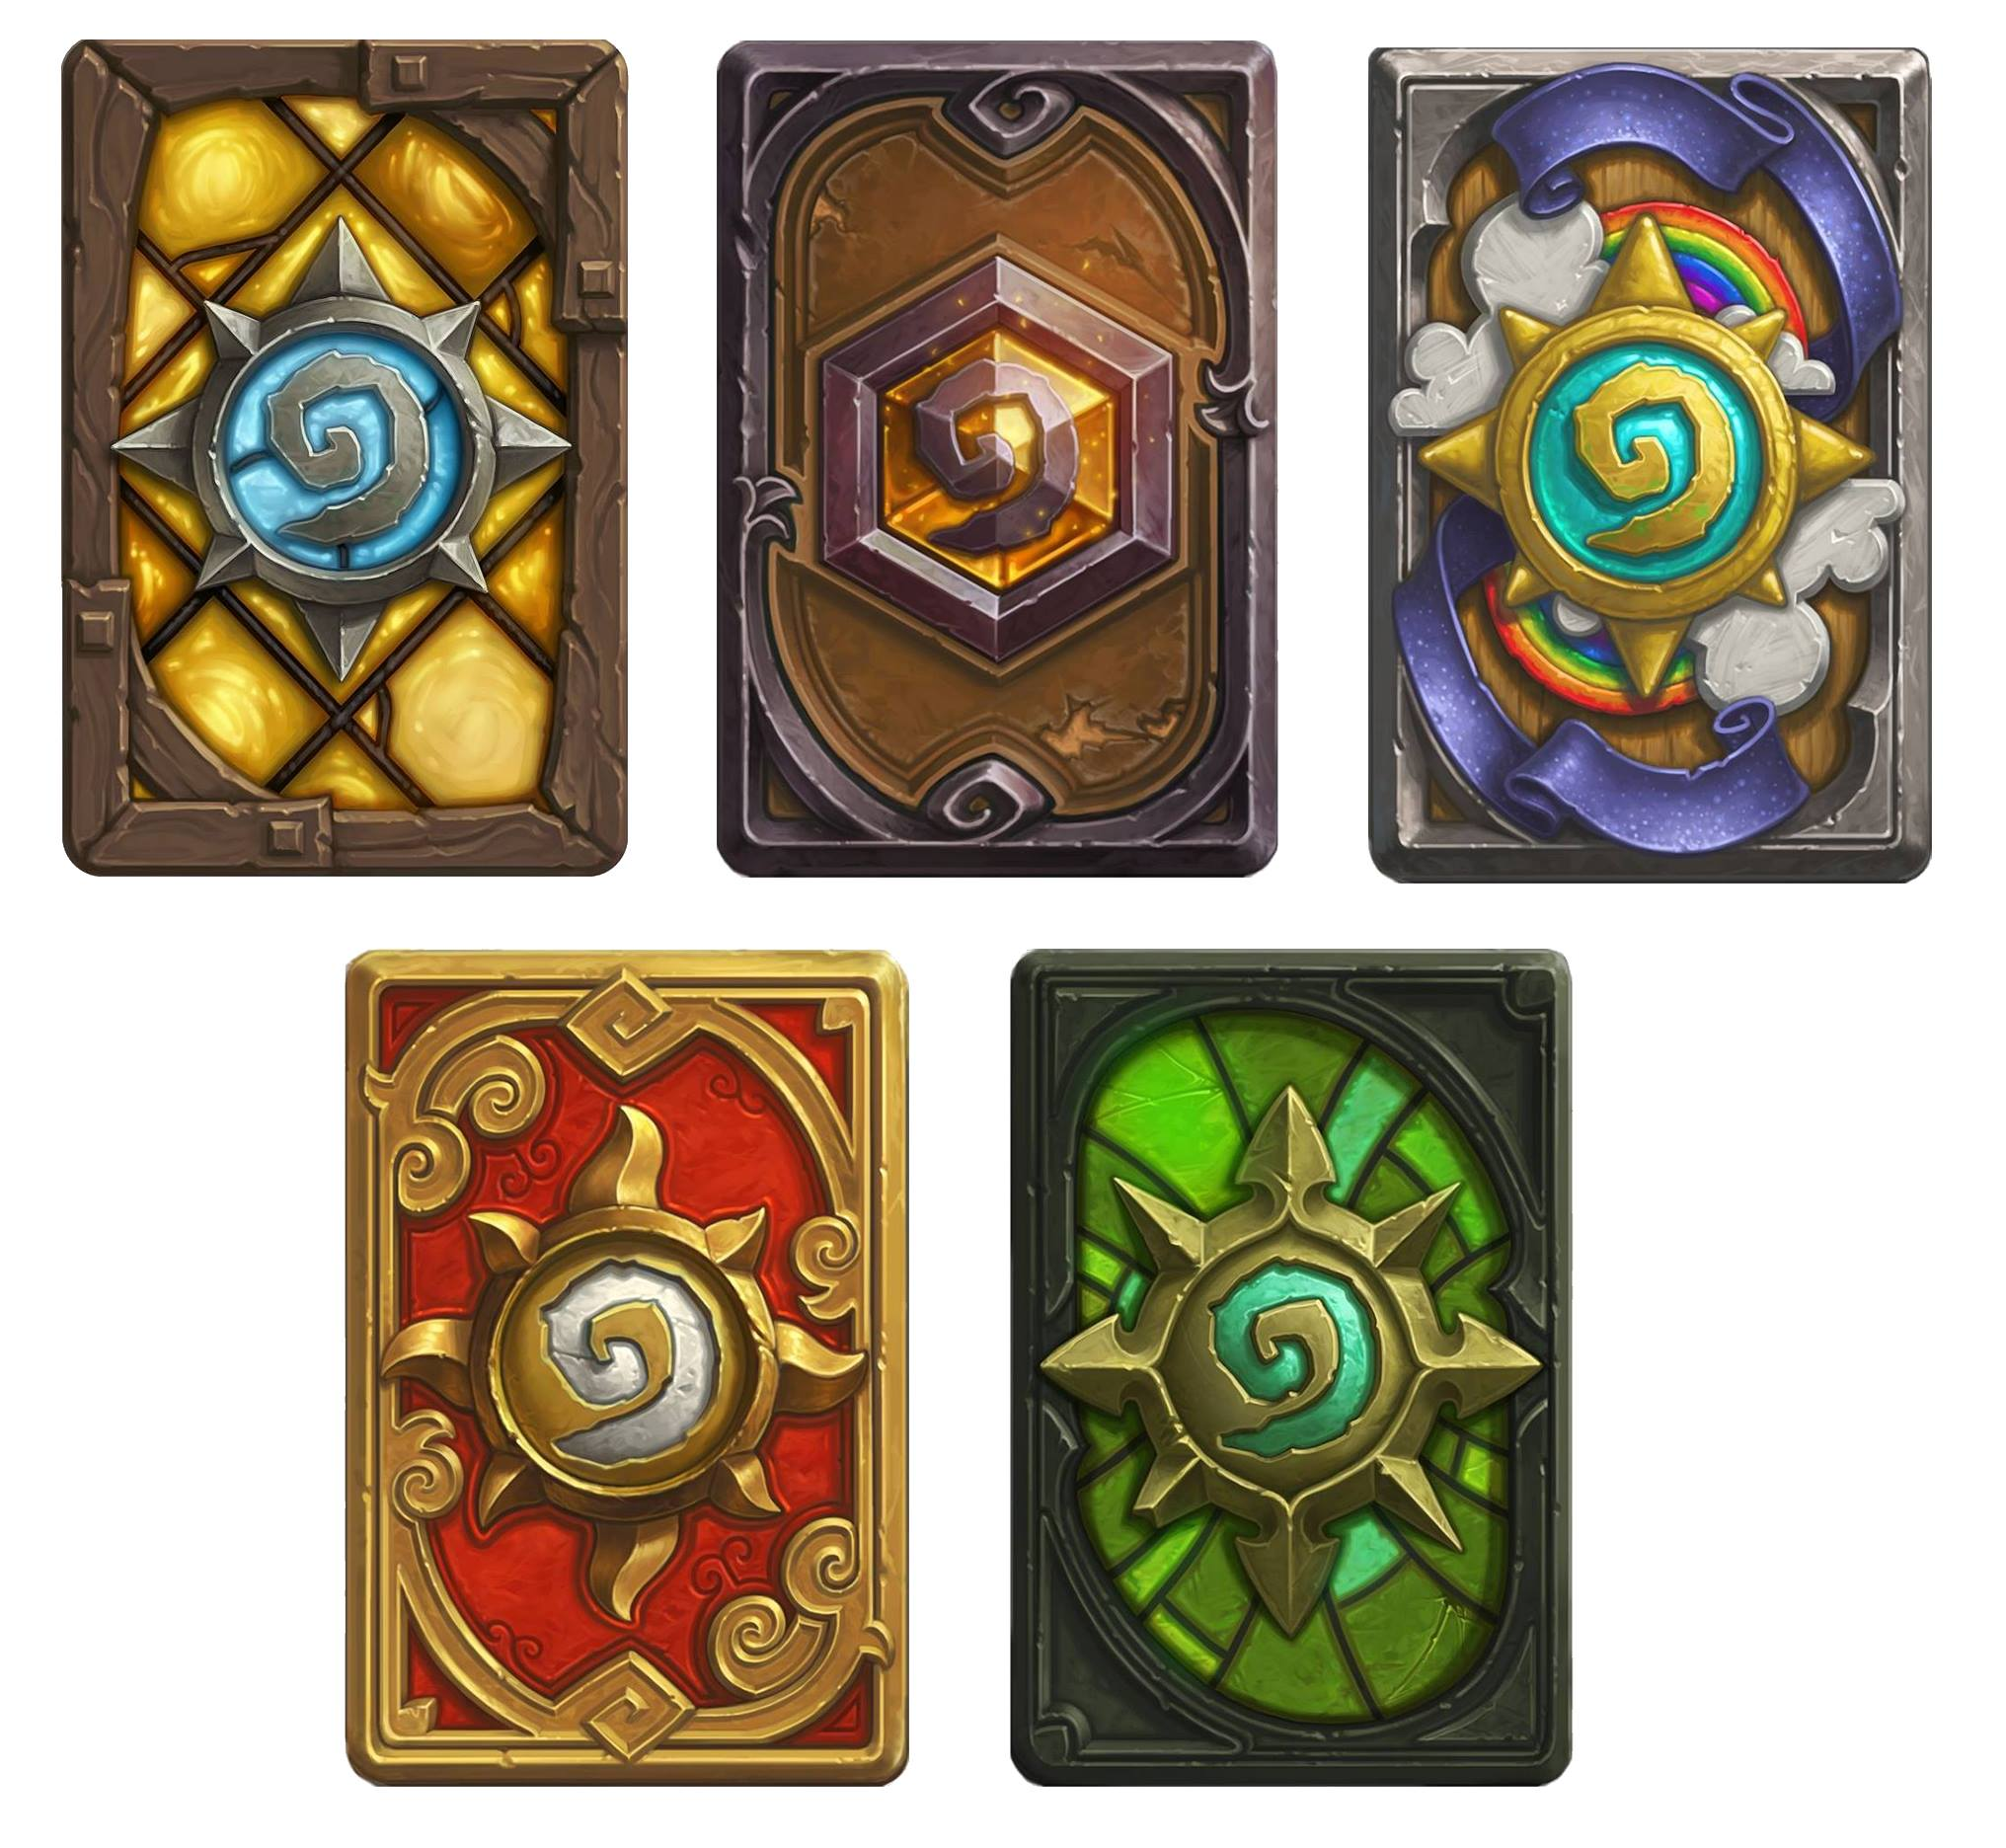 Hearthstone: Hearthstone Card Back Designs To Be Released!